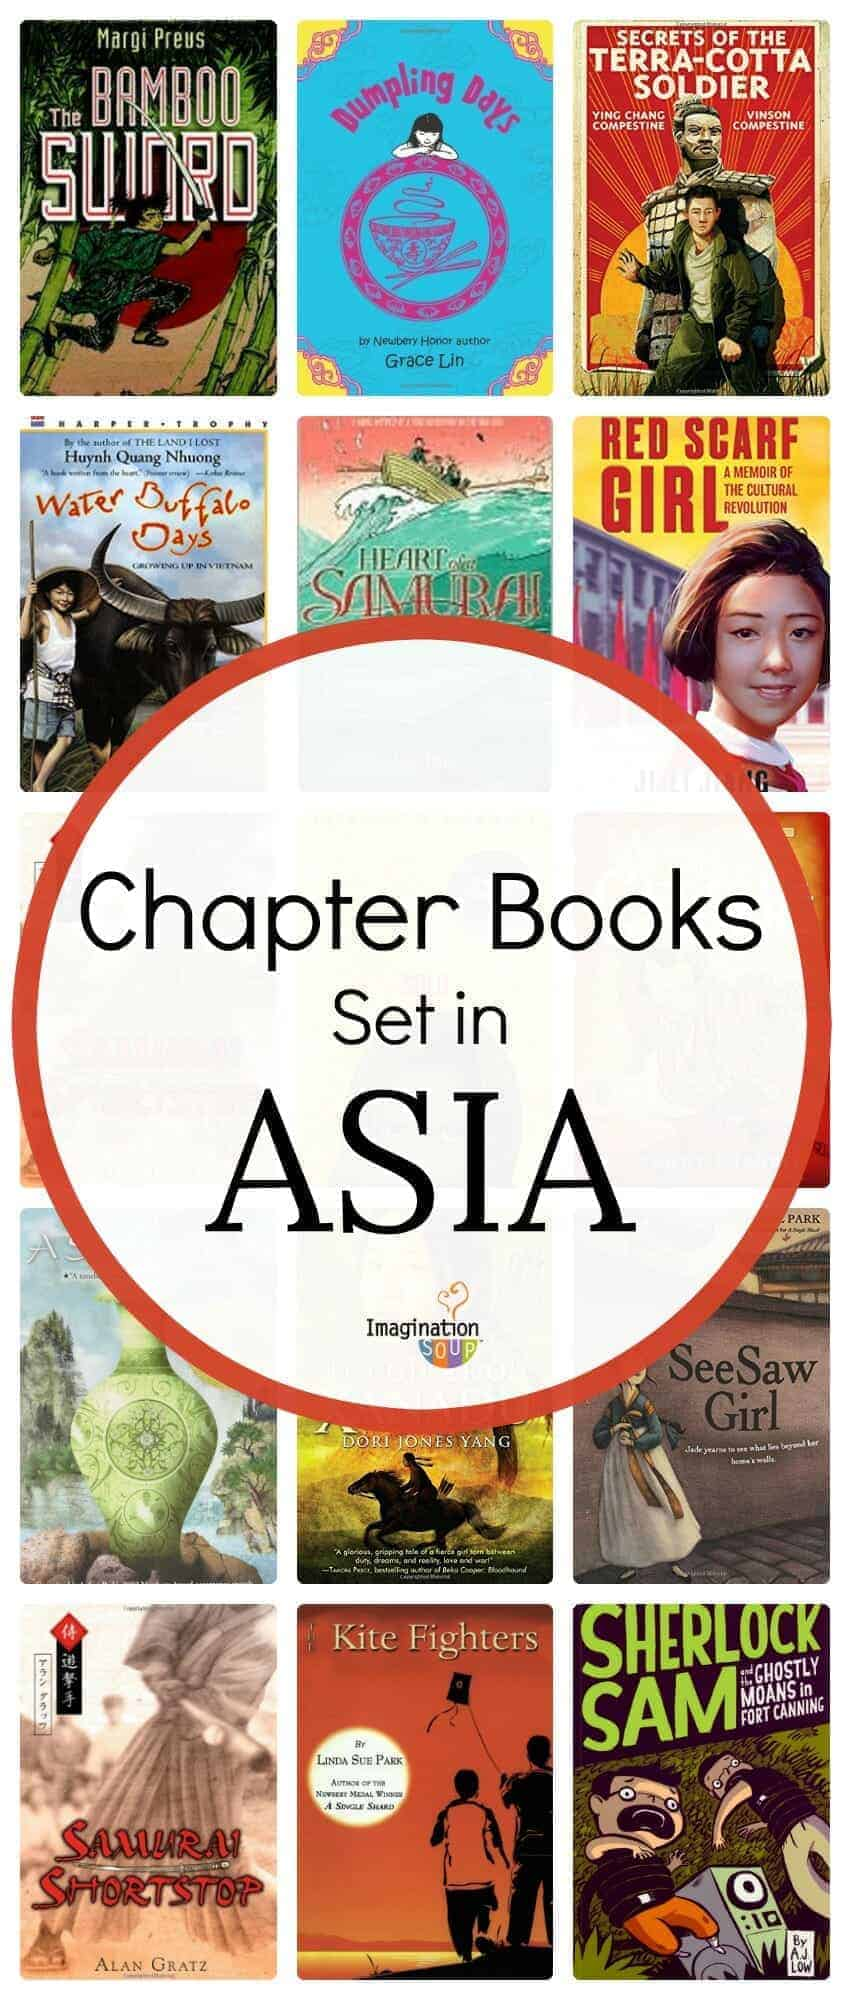 chapter books set in Asia (China, Japan, Korea, Hong Kong)